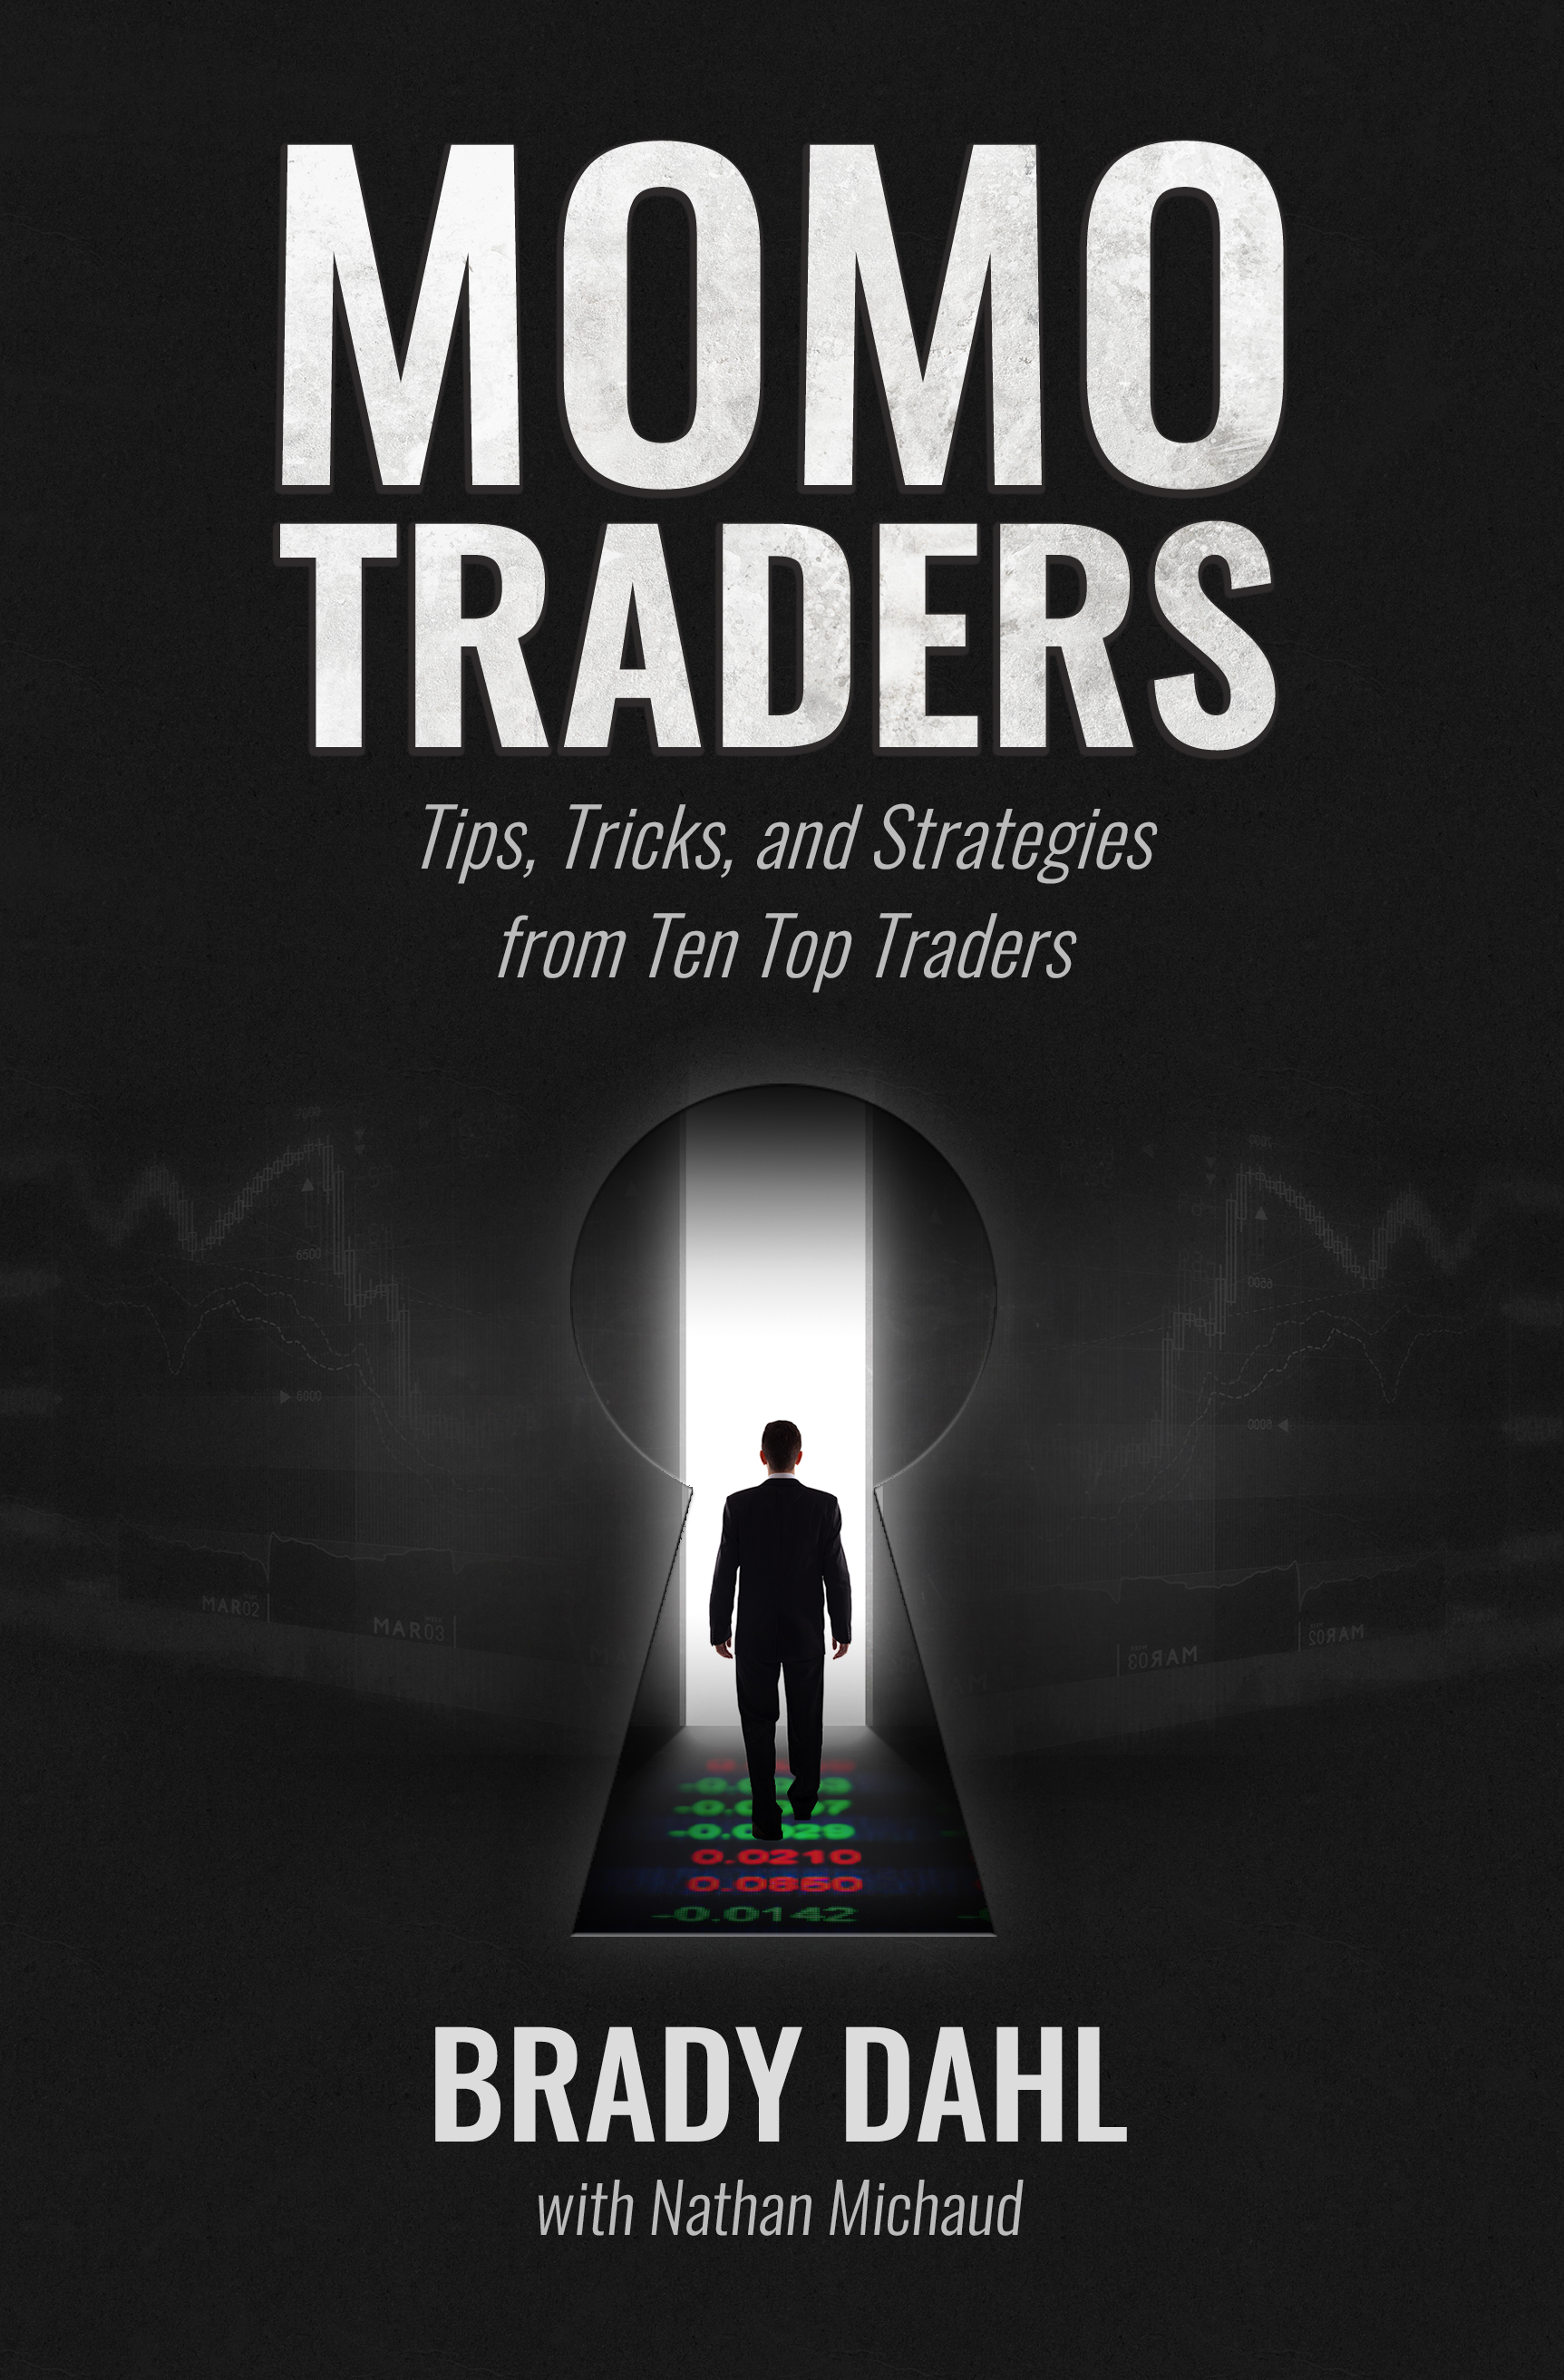 Momo traders - tips, tricks, and strategies from ten top traders